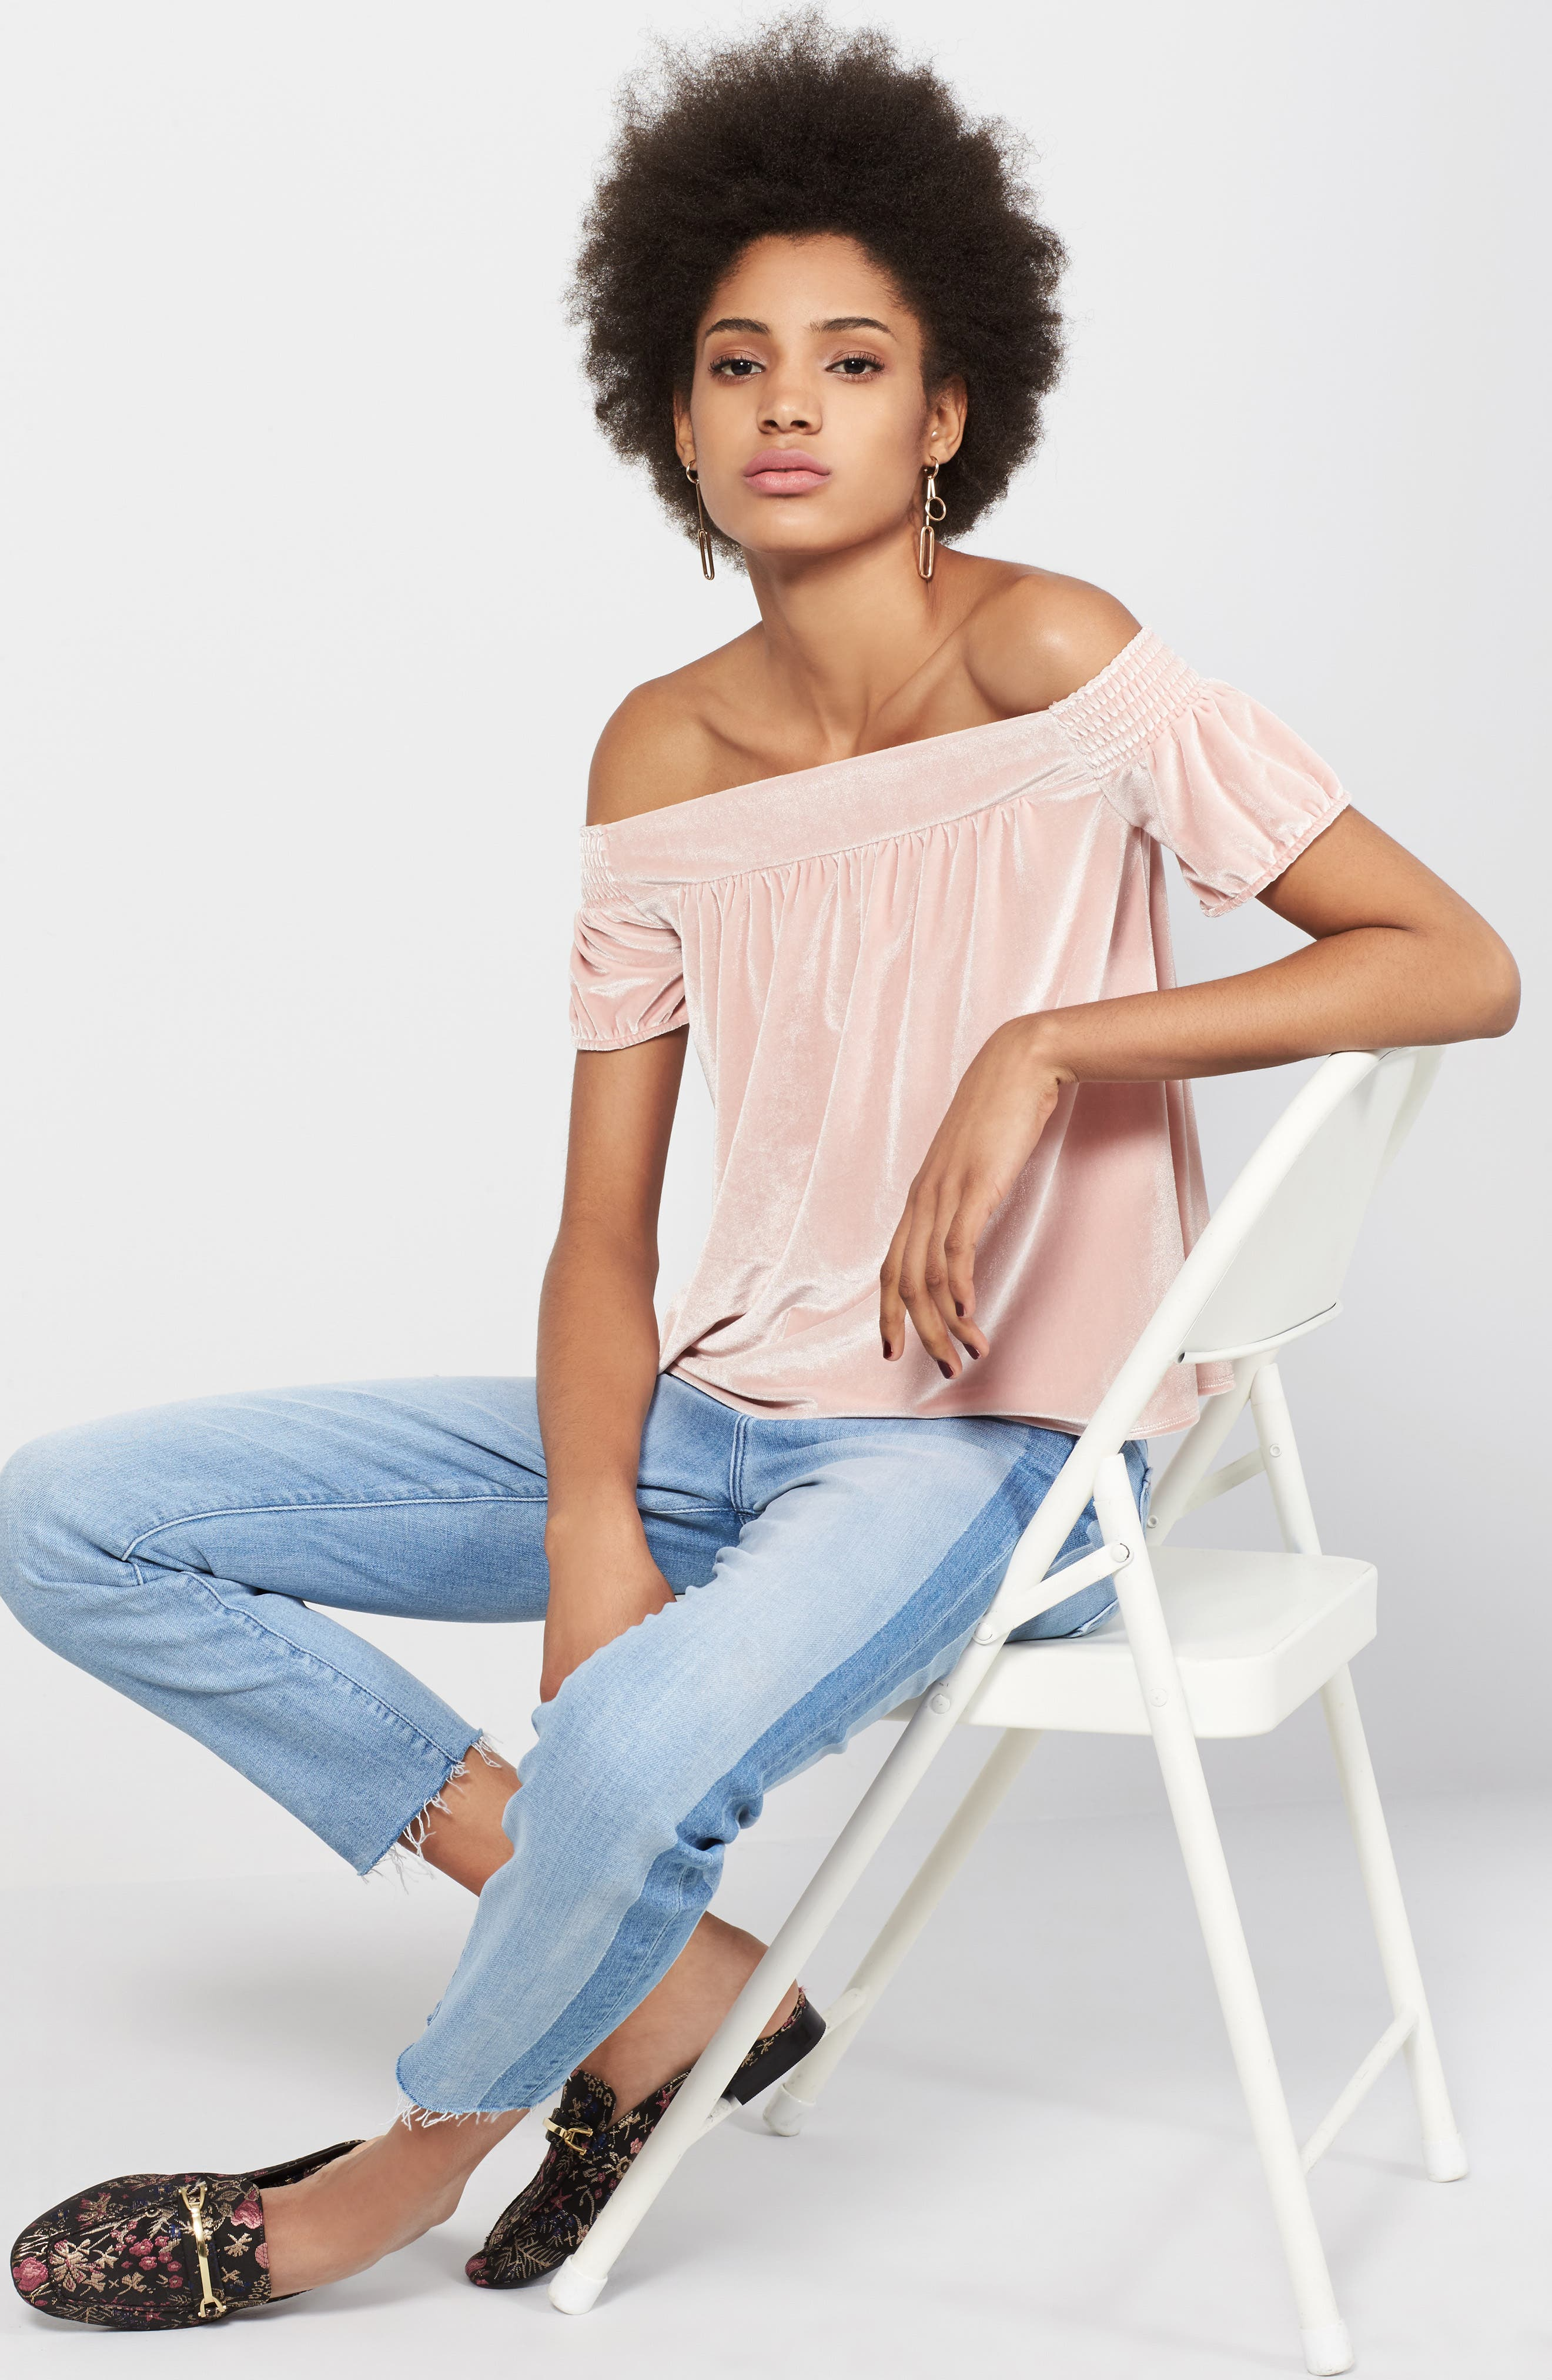 Hinge Top & 7 For All Mankind® Jeans Outfit with Accessories